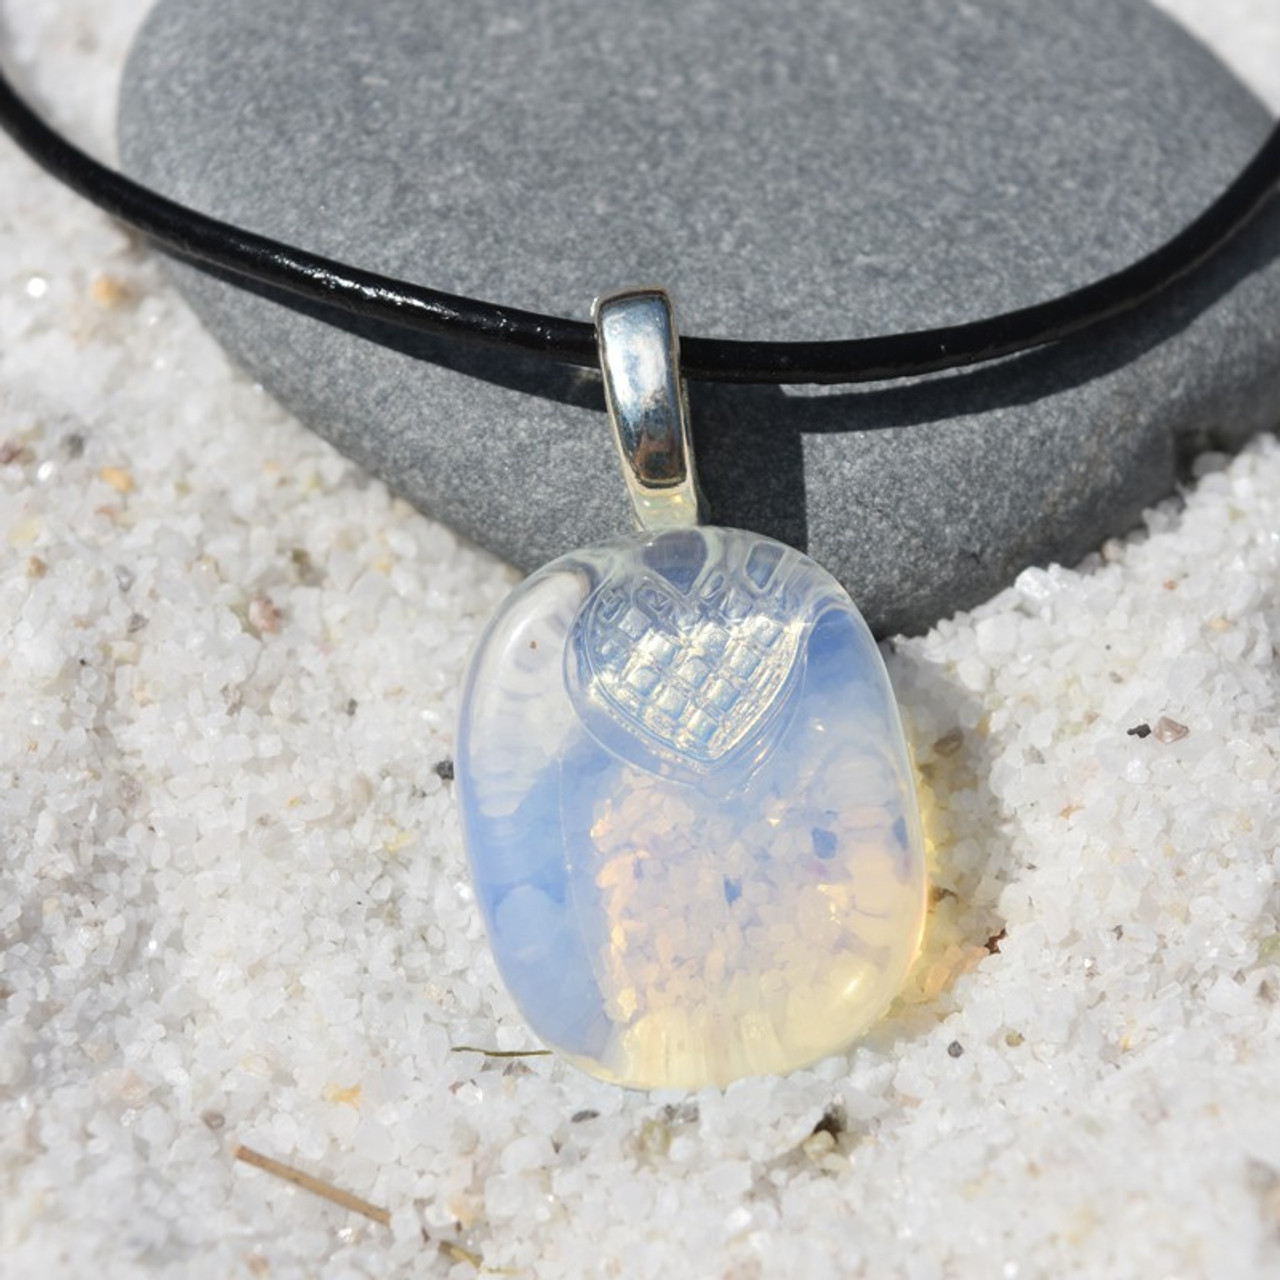 Opalite Palm Stone on a Leather Thong Necklace - Made to Order